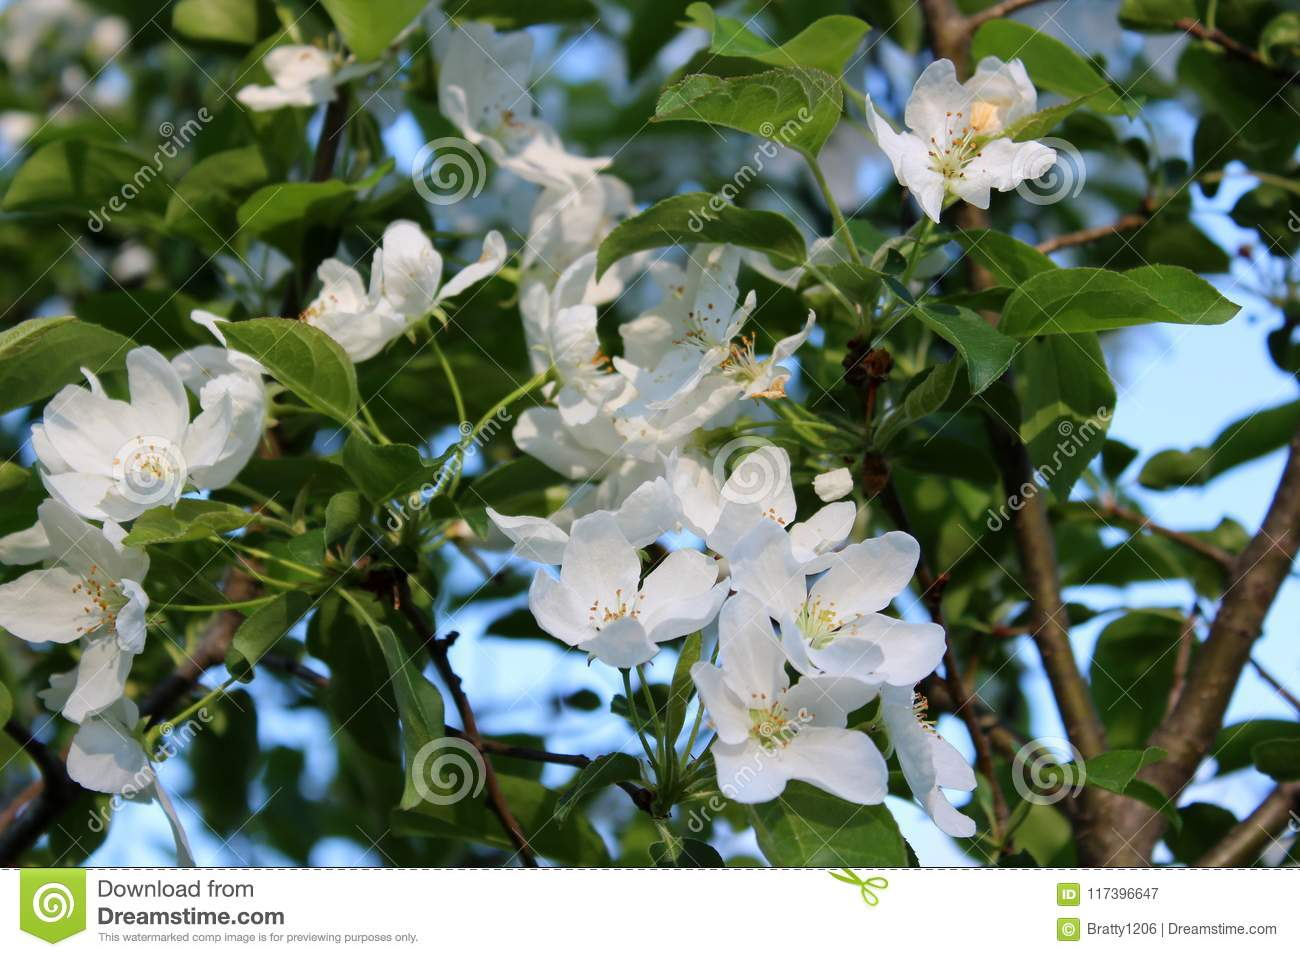 Fragrant white flowers on branches of tree with blue skies beyond download fragrant white flowers on branches of tree with blue skies beyond stock image image mightylinksfo